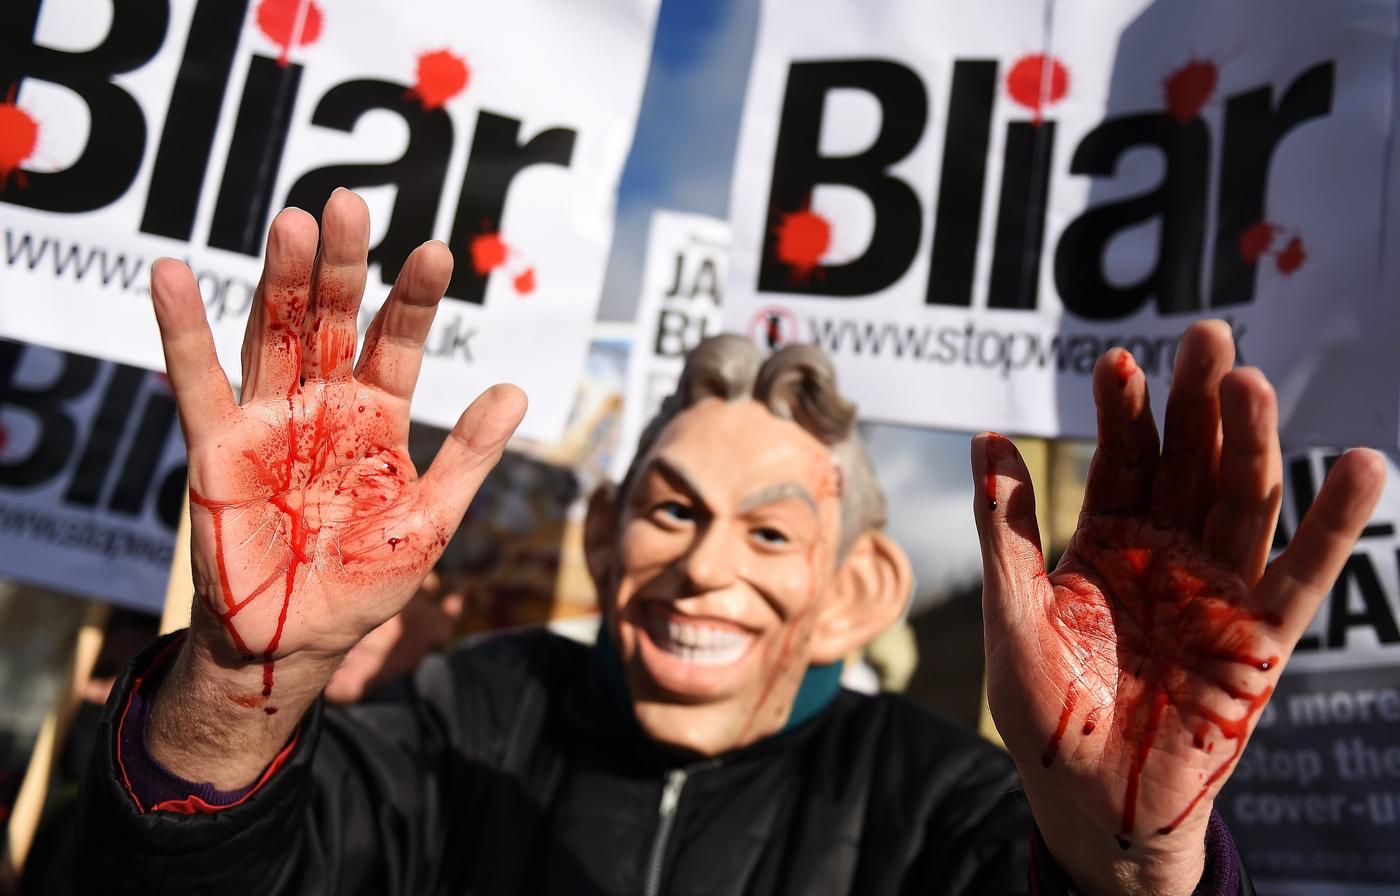 Tony Blair should be 'dragged to court in shackles and tried as a war criminal'